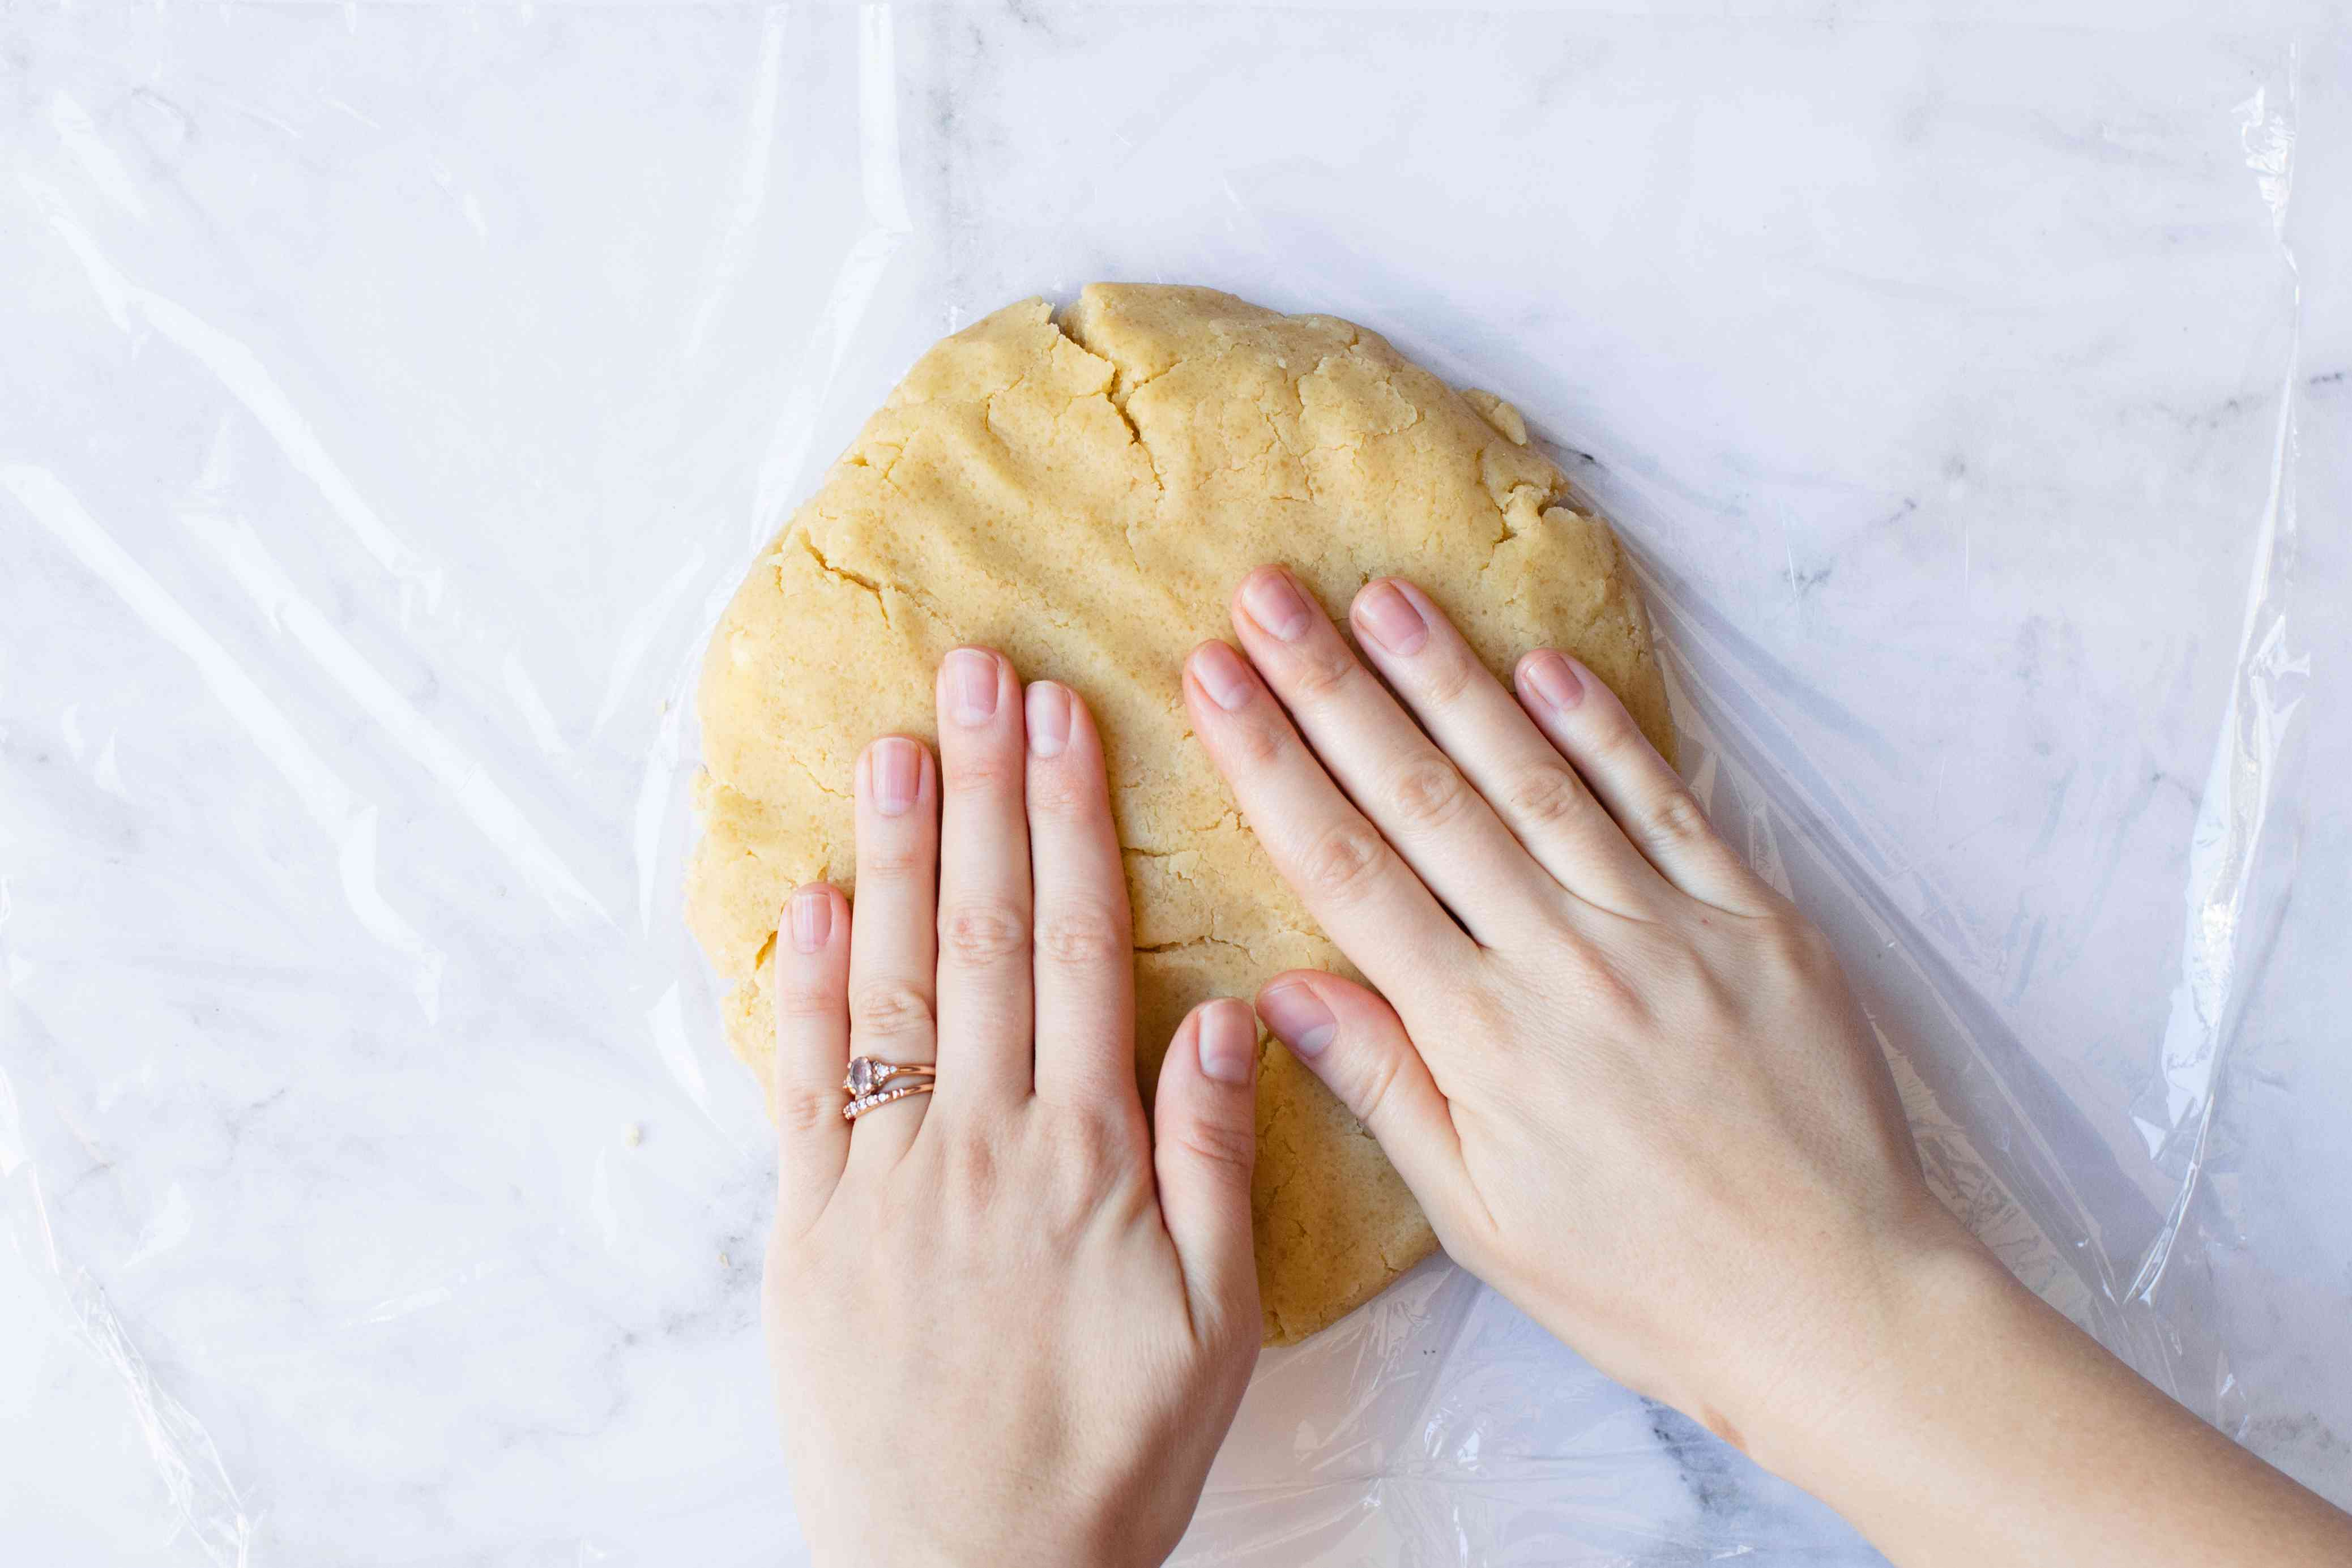 Wrapping almond cookie dough in plastic wrap.